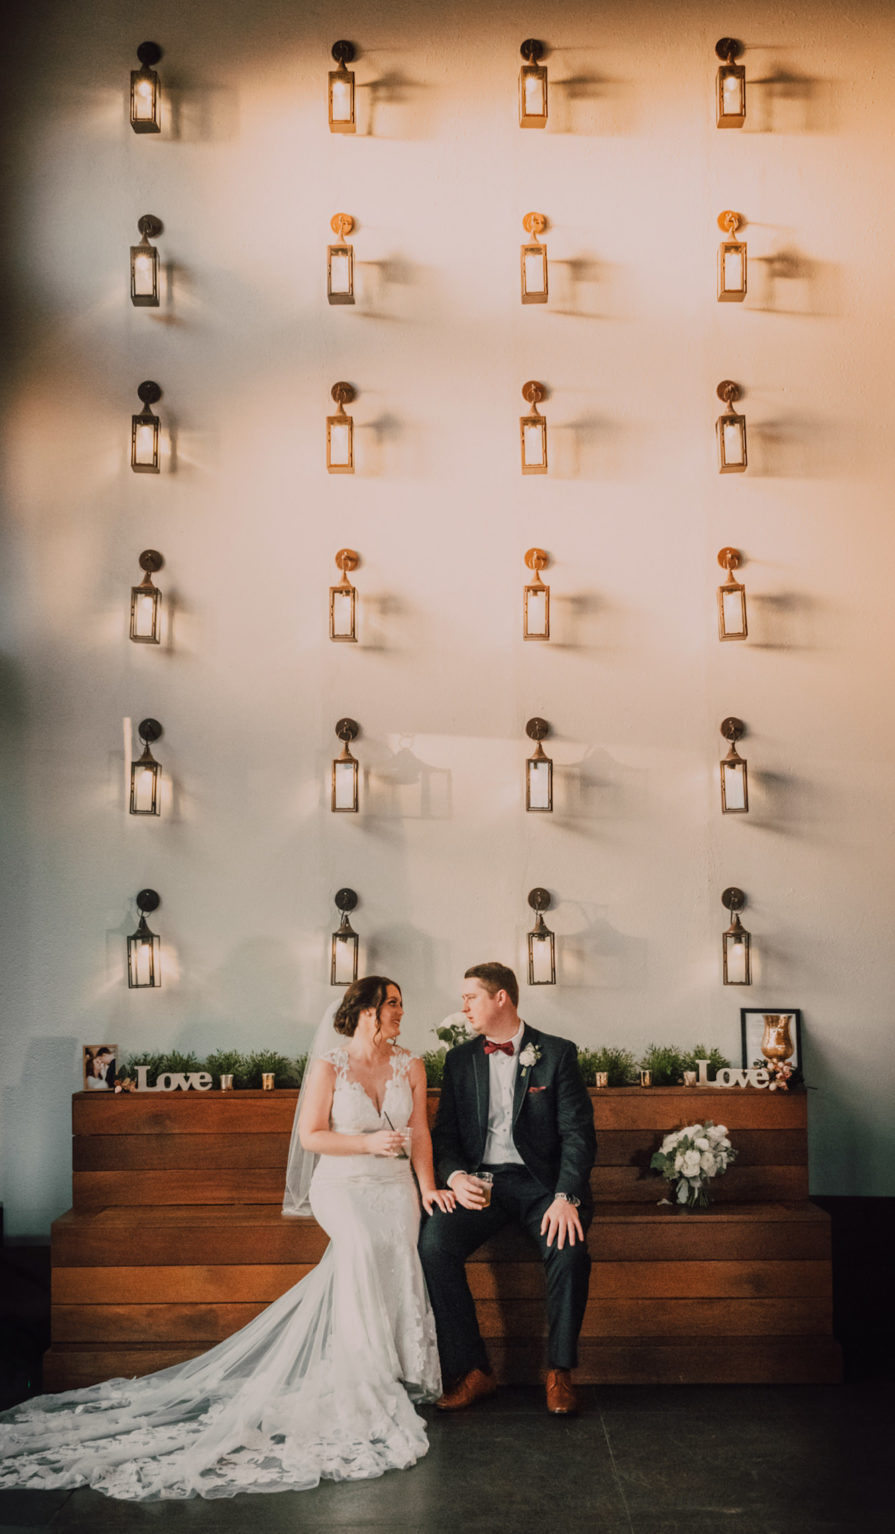 Bride and Groom Indoor Portrait in Tampa Heights CAVU with Lantern Wall Backdrop | Lace Sheath V Neck Illusion Sleeve Bridal Gown Wedding Dress with Sheer Embroidered Train | Groom Wearing Classic Black Suit Tux | UNIQUE Weddings + Events